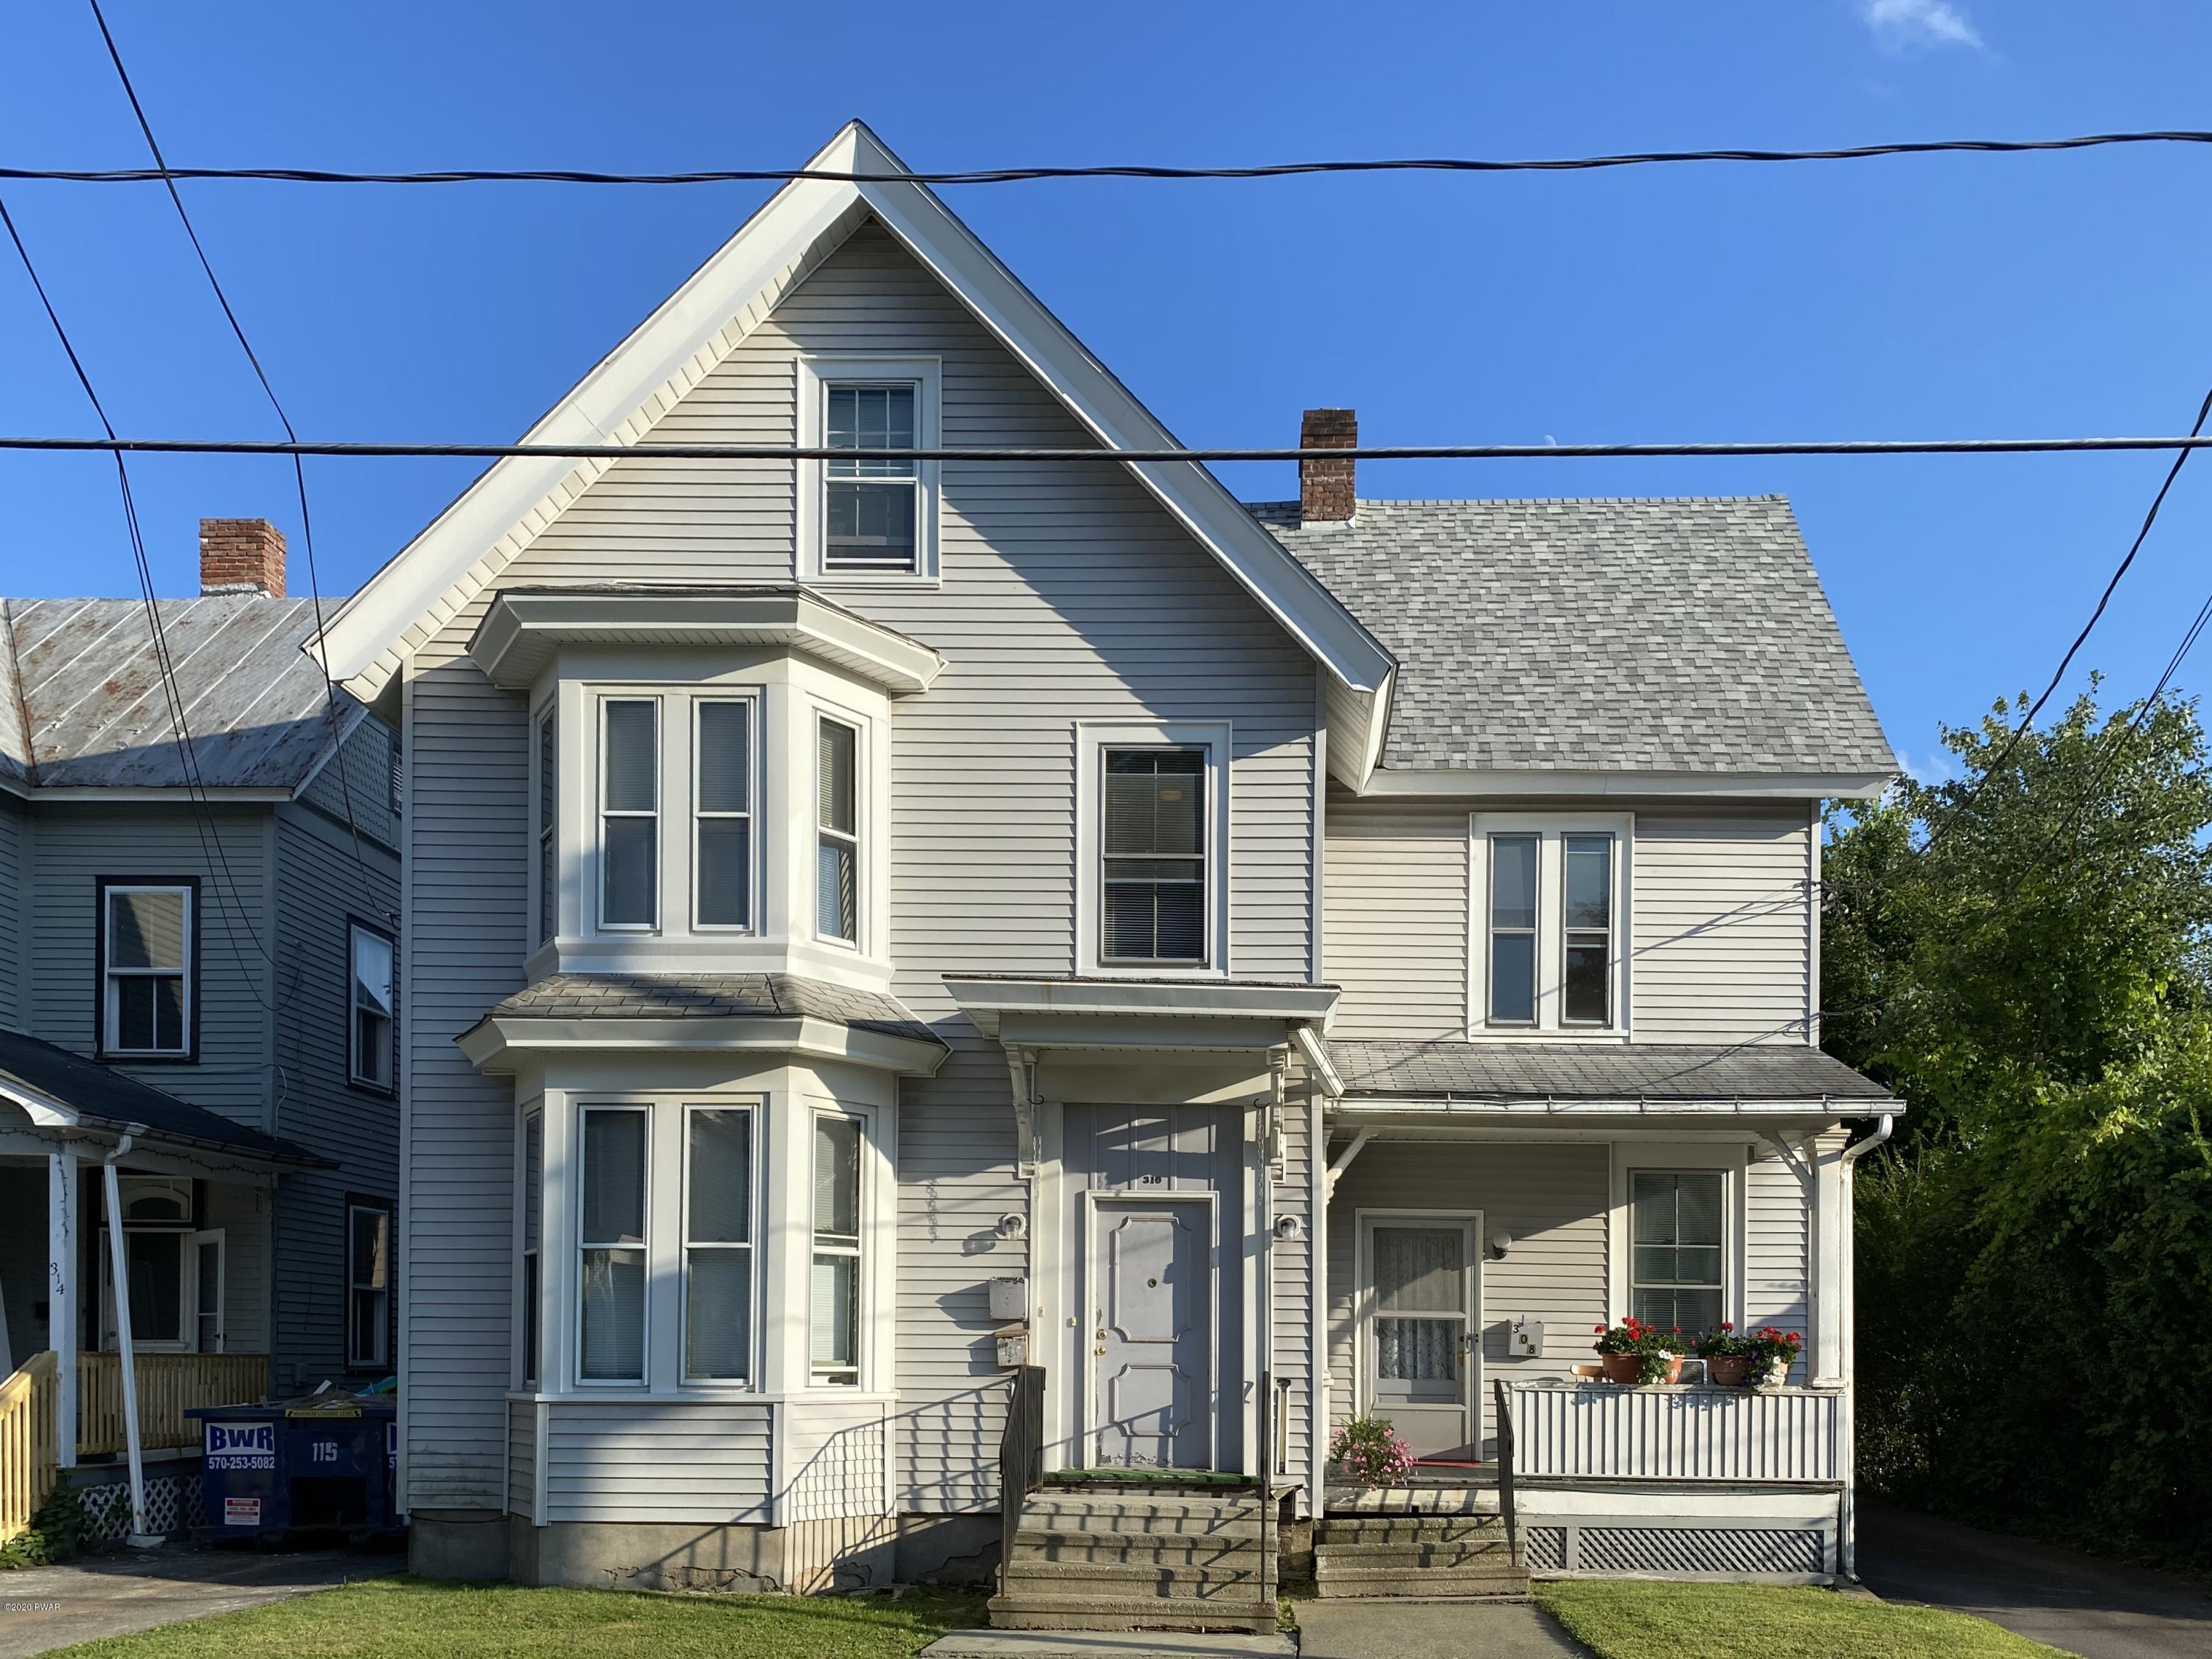 310 11Th St, Honesdale, Pennsylvania 18431, 5 Bedrooms Bedrooms, ,2 BathroomsBathrooms,Single Family,For Sale,310 11Th St,3,20-3433